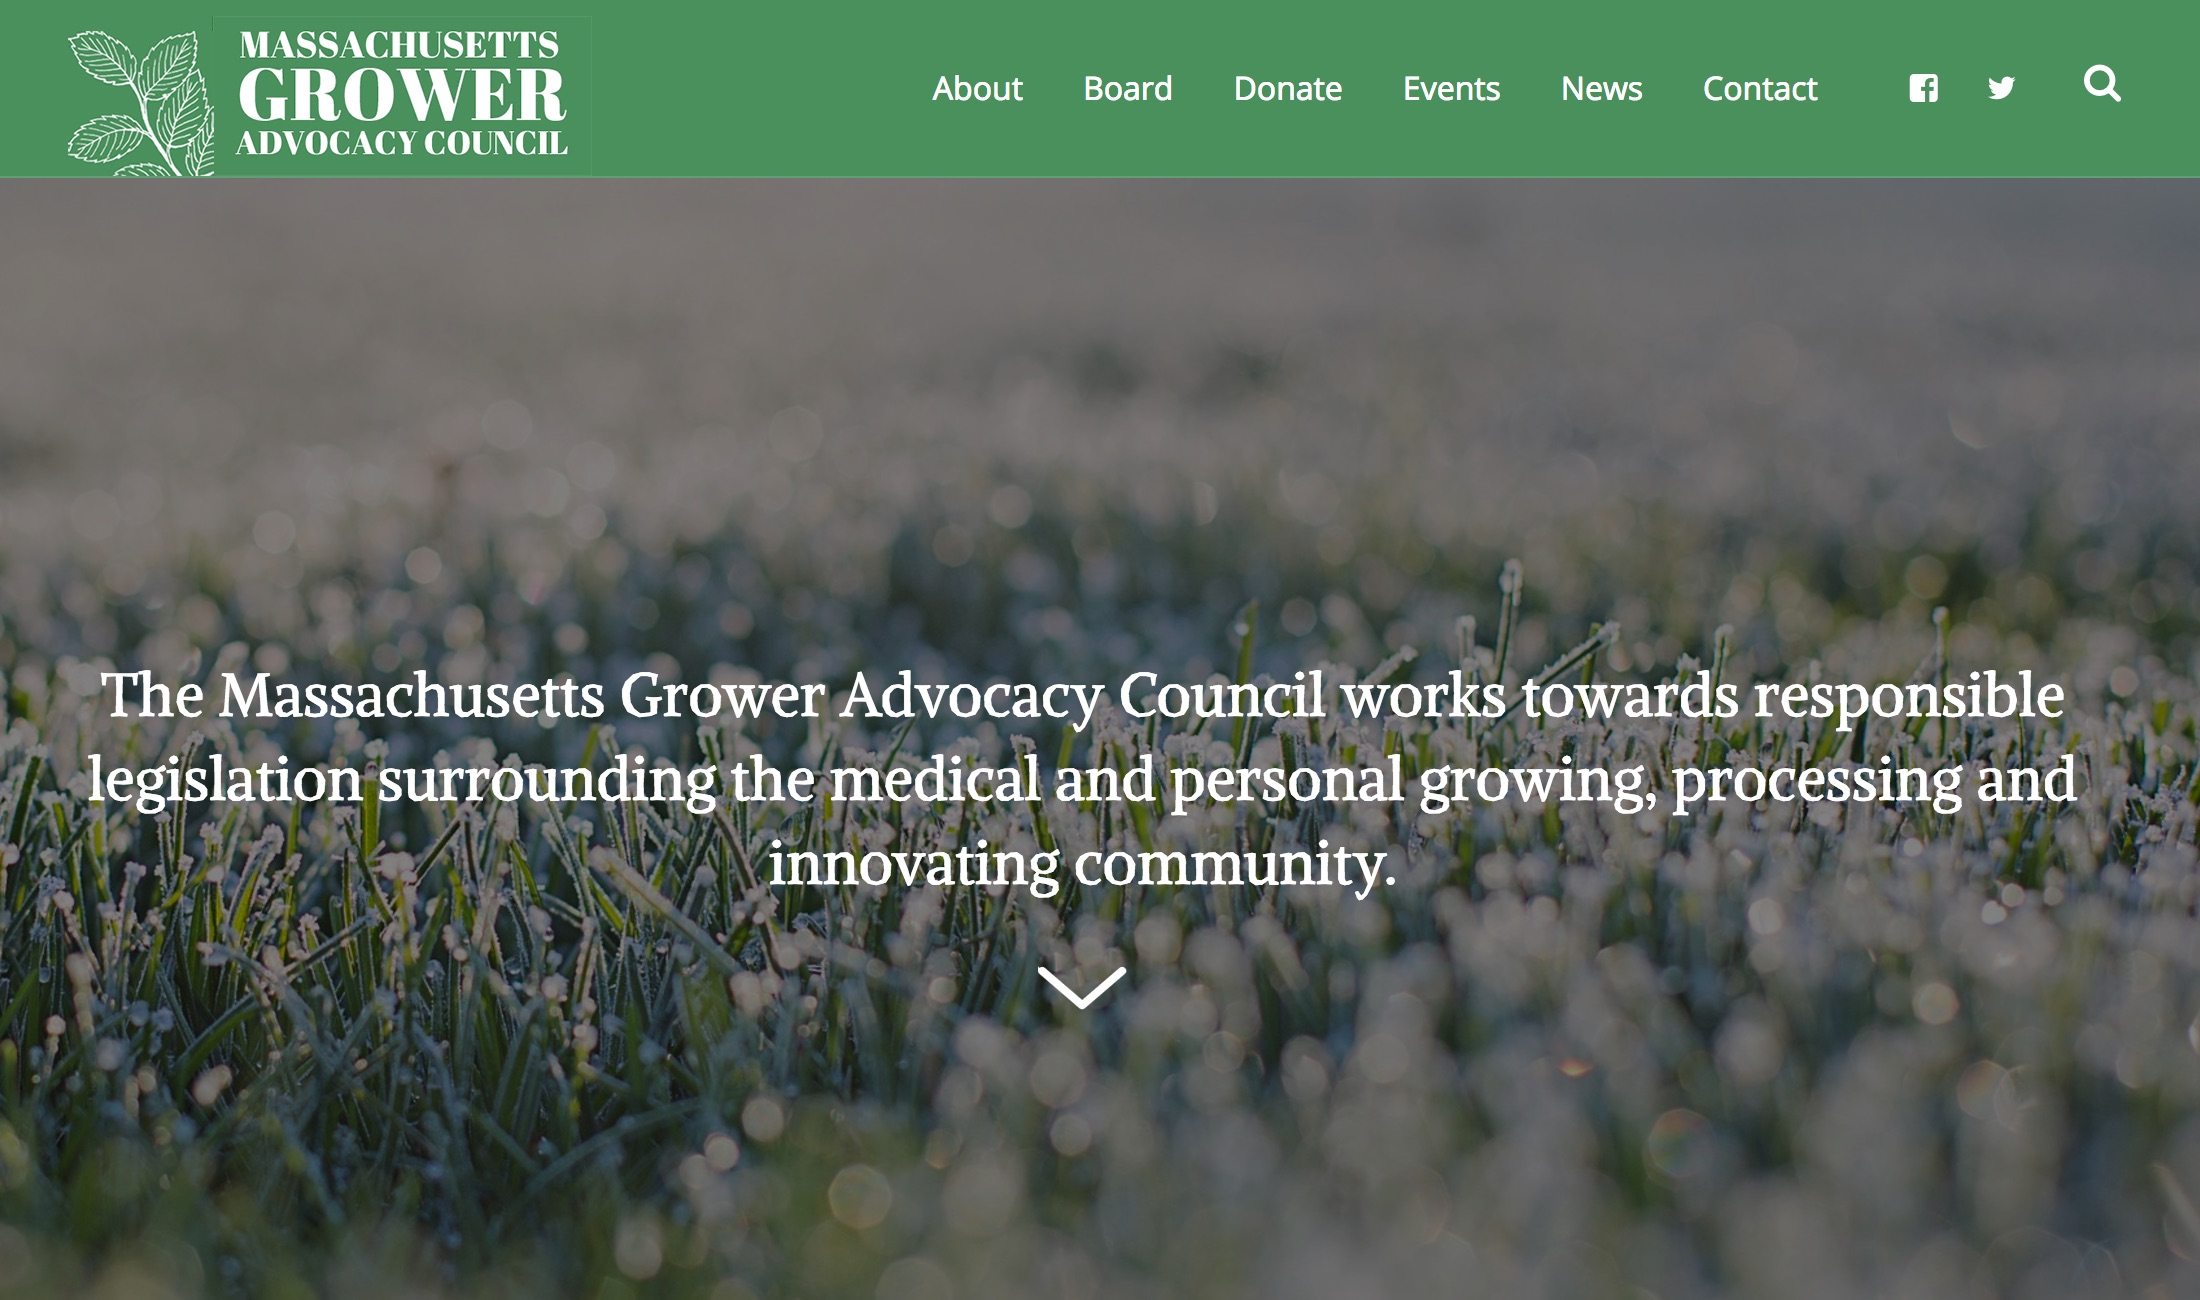 Massachusetts Growers Advocacy Council